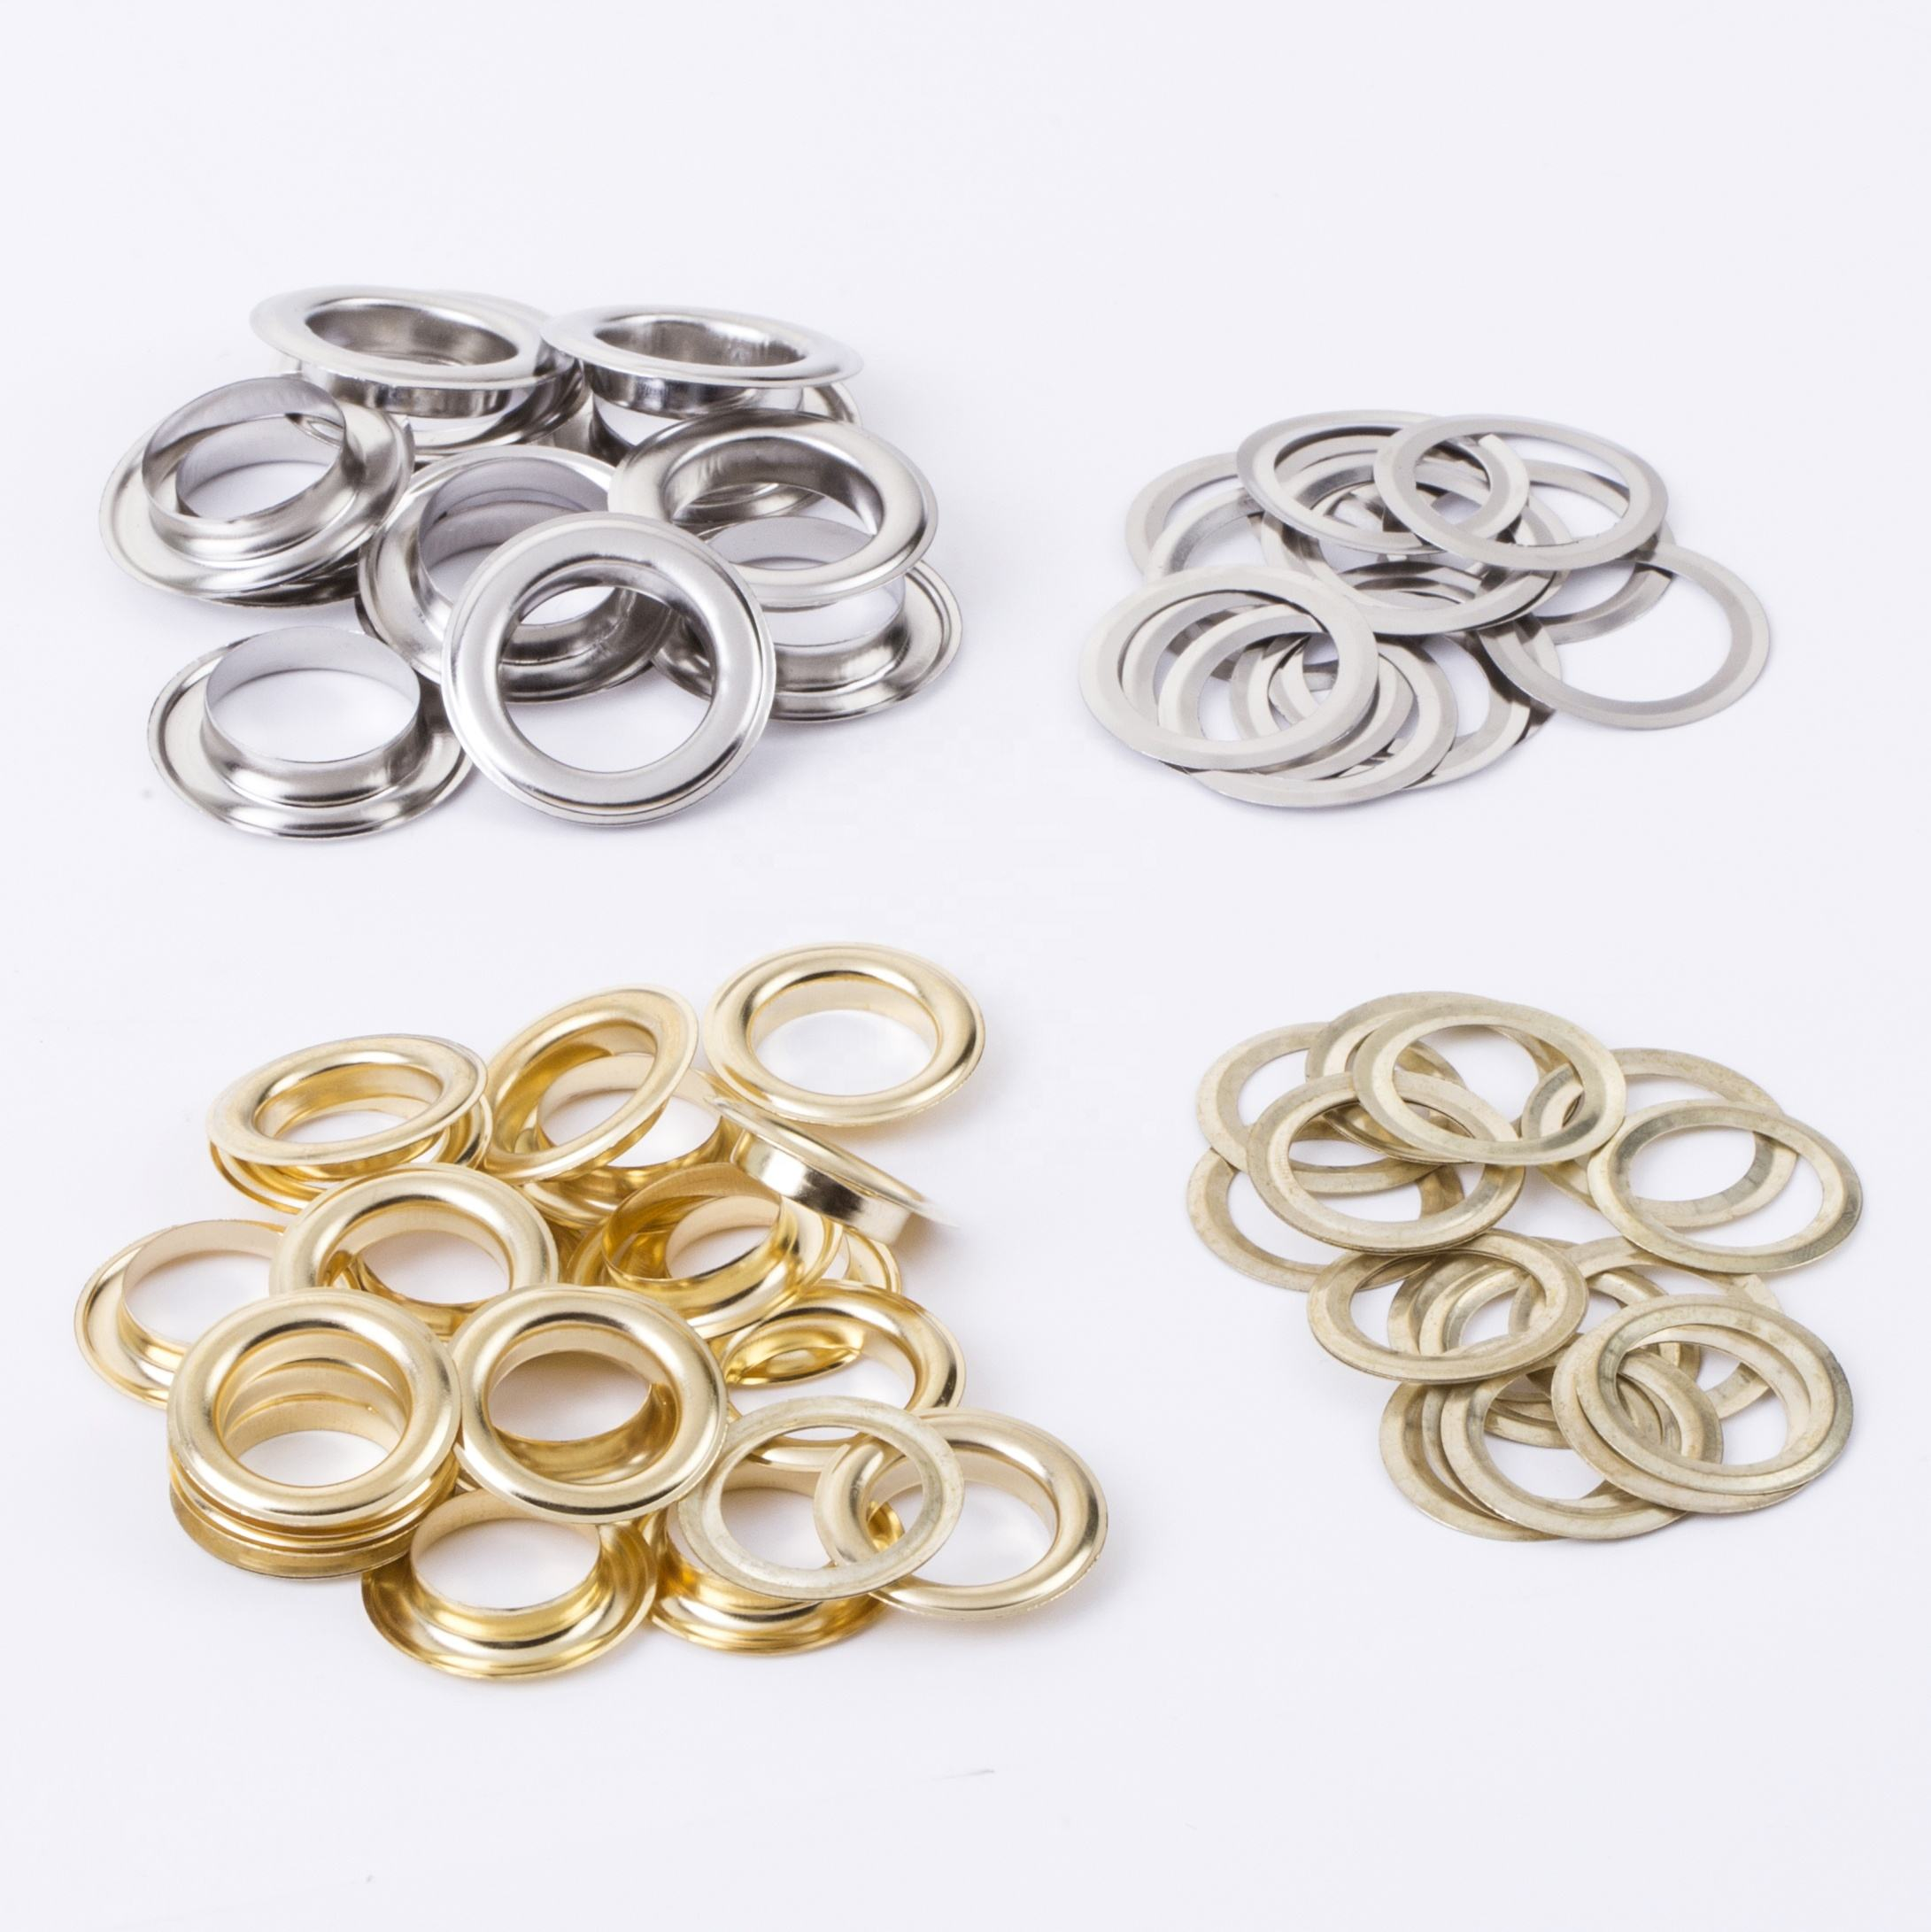 Round Eyelet for Garment Accessory and Garment Accessories for Garment